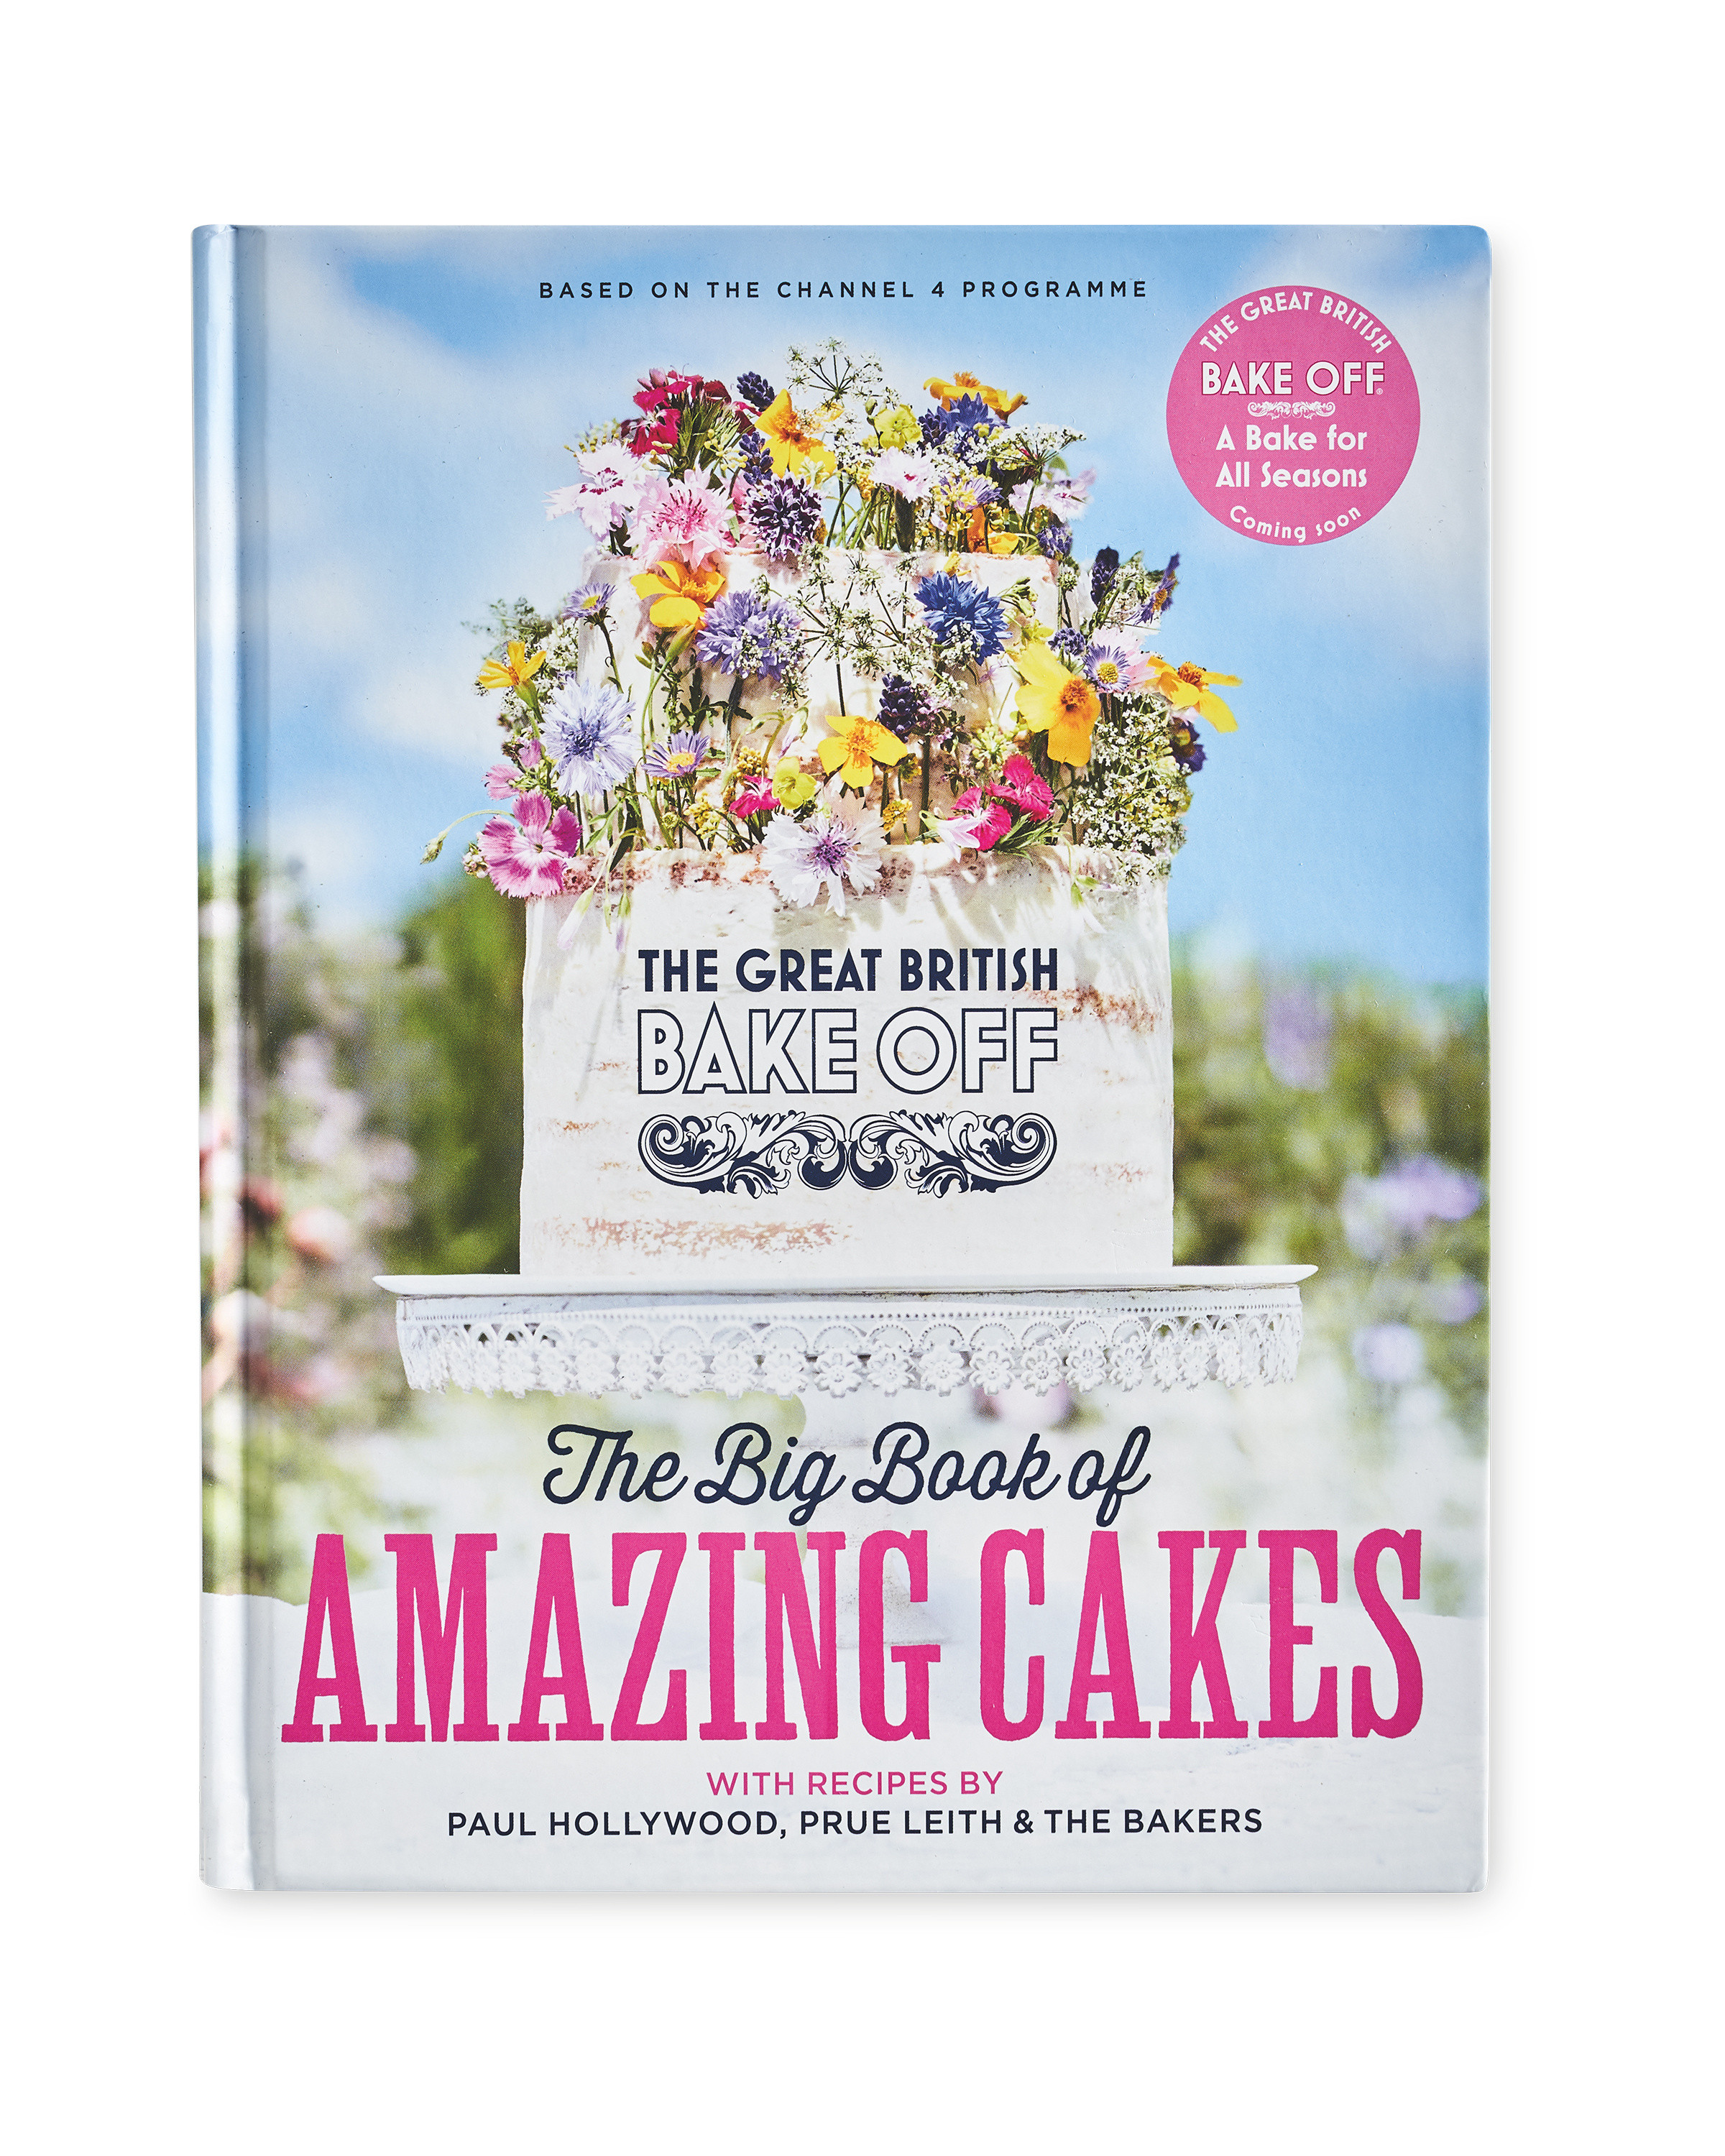 Bake Off's Big Book Of Amazing Cakes